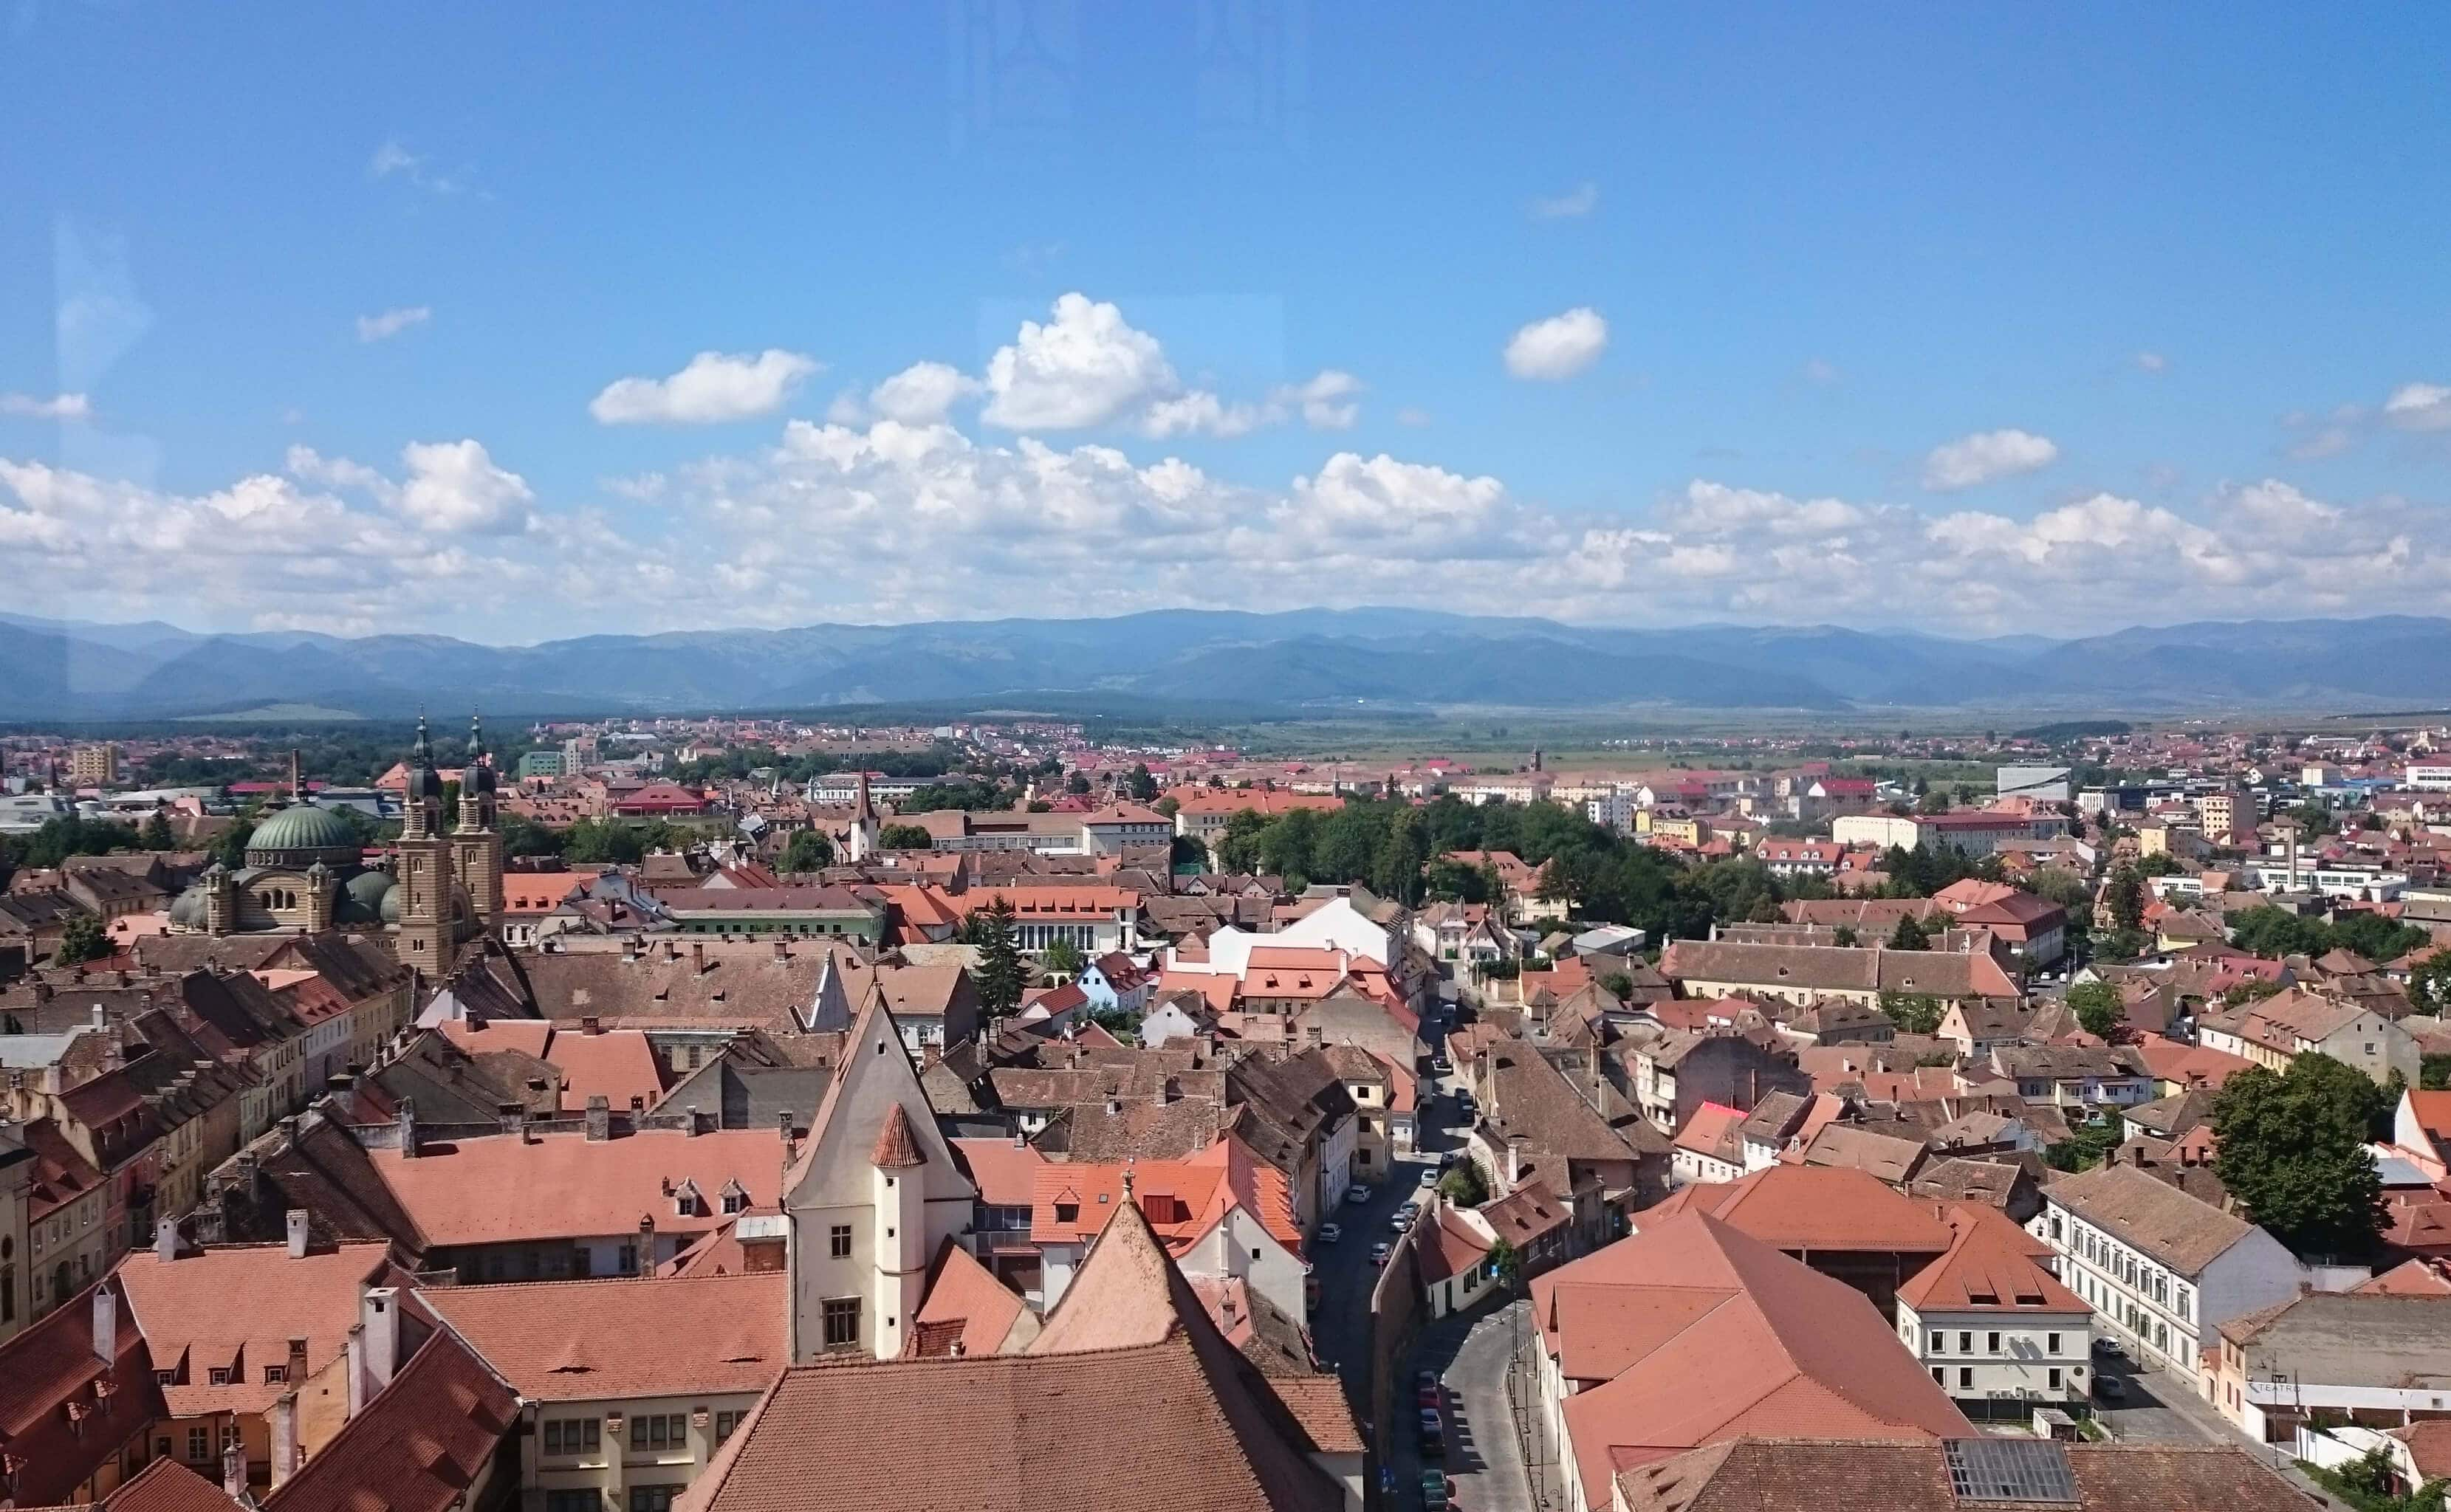 Sibiu, Romania - One of the most underrated cities in the world + why you should add it to your bucket list low!